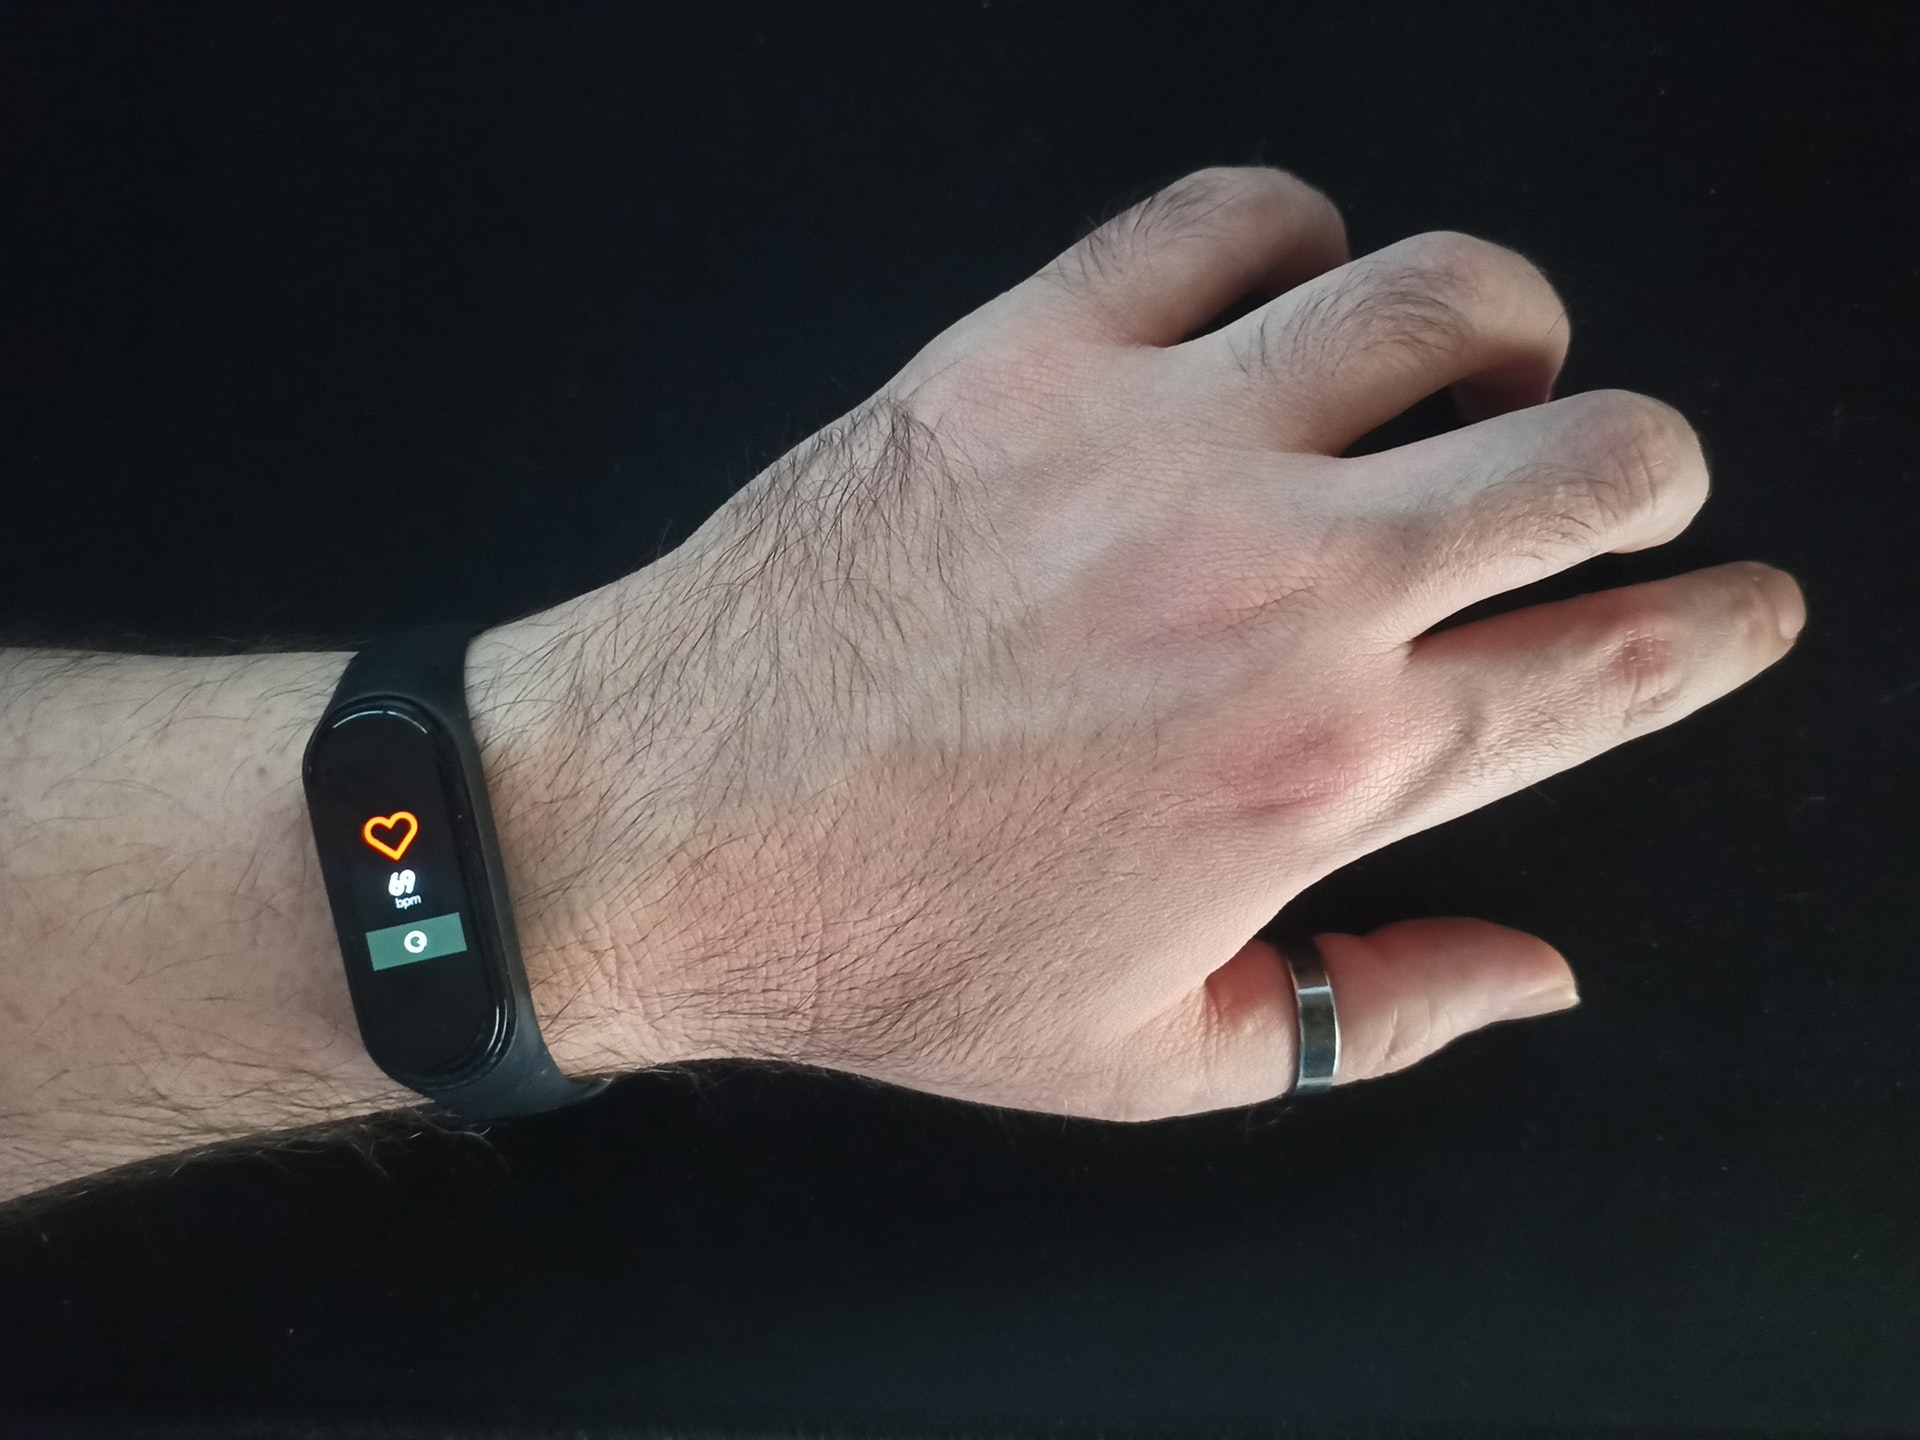 Learn How to Measure Heart Rate at Home - Best Apps to Download